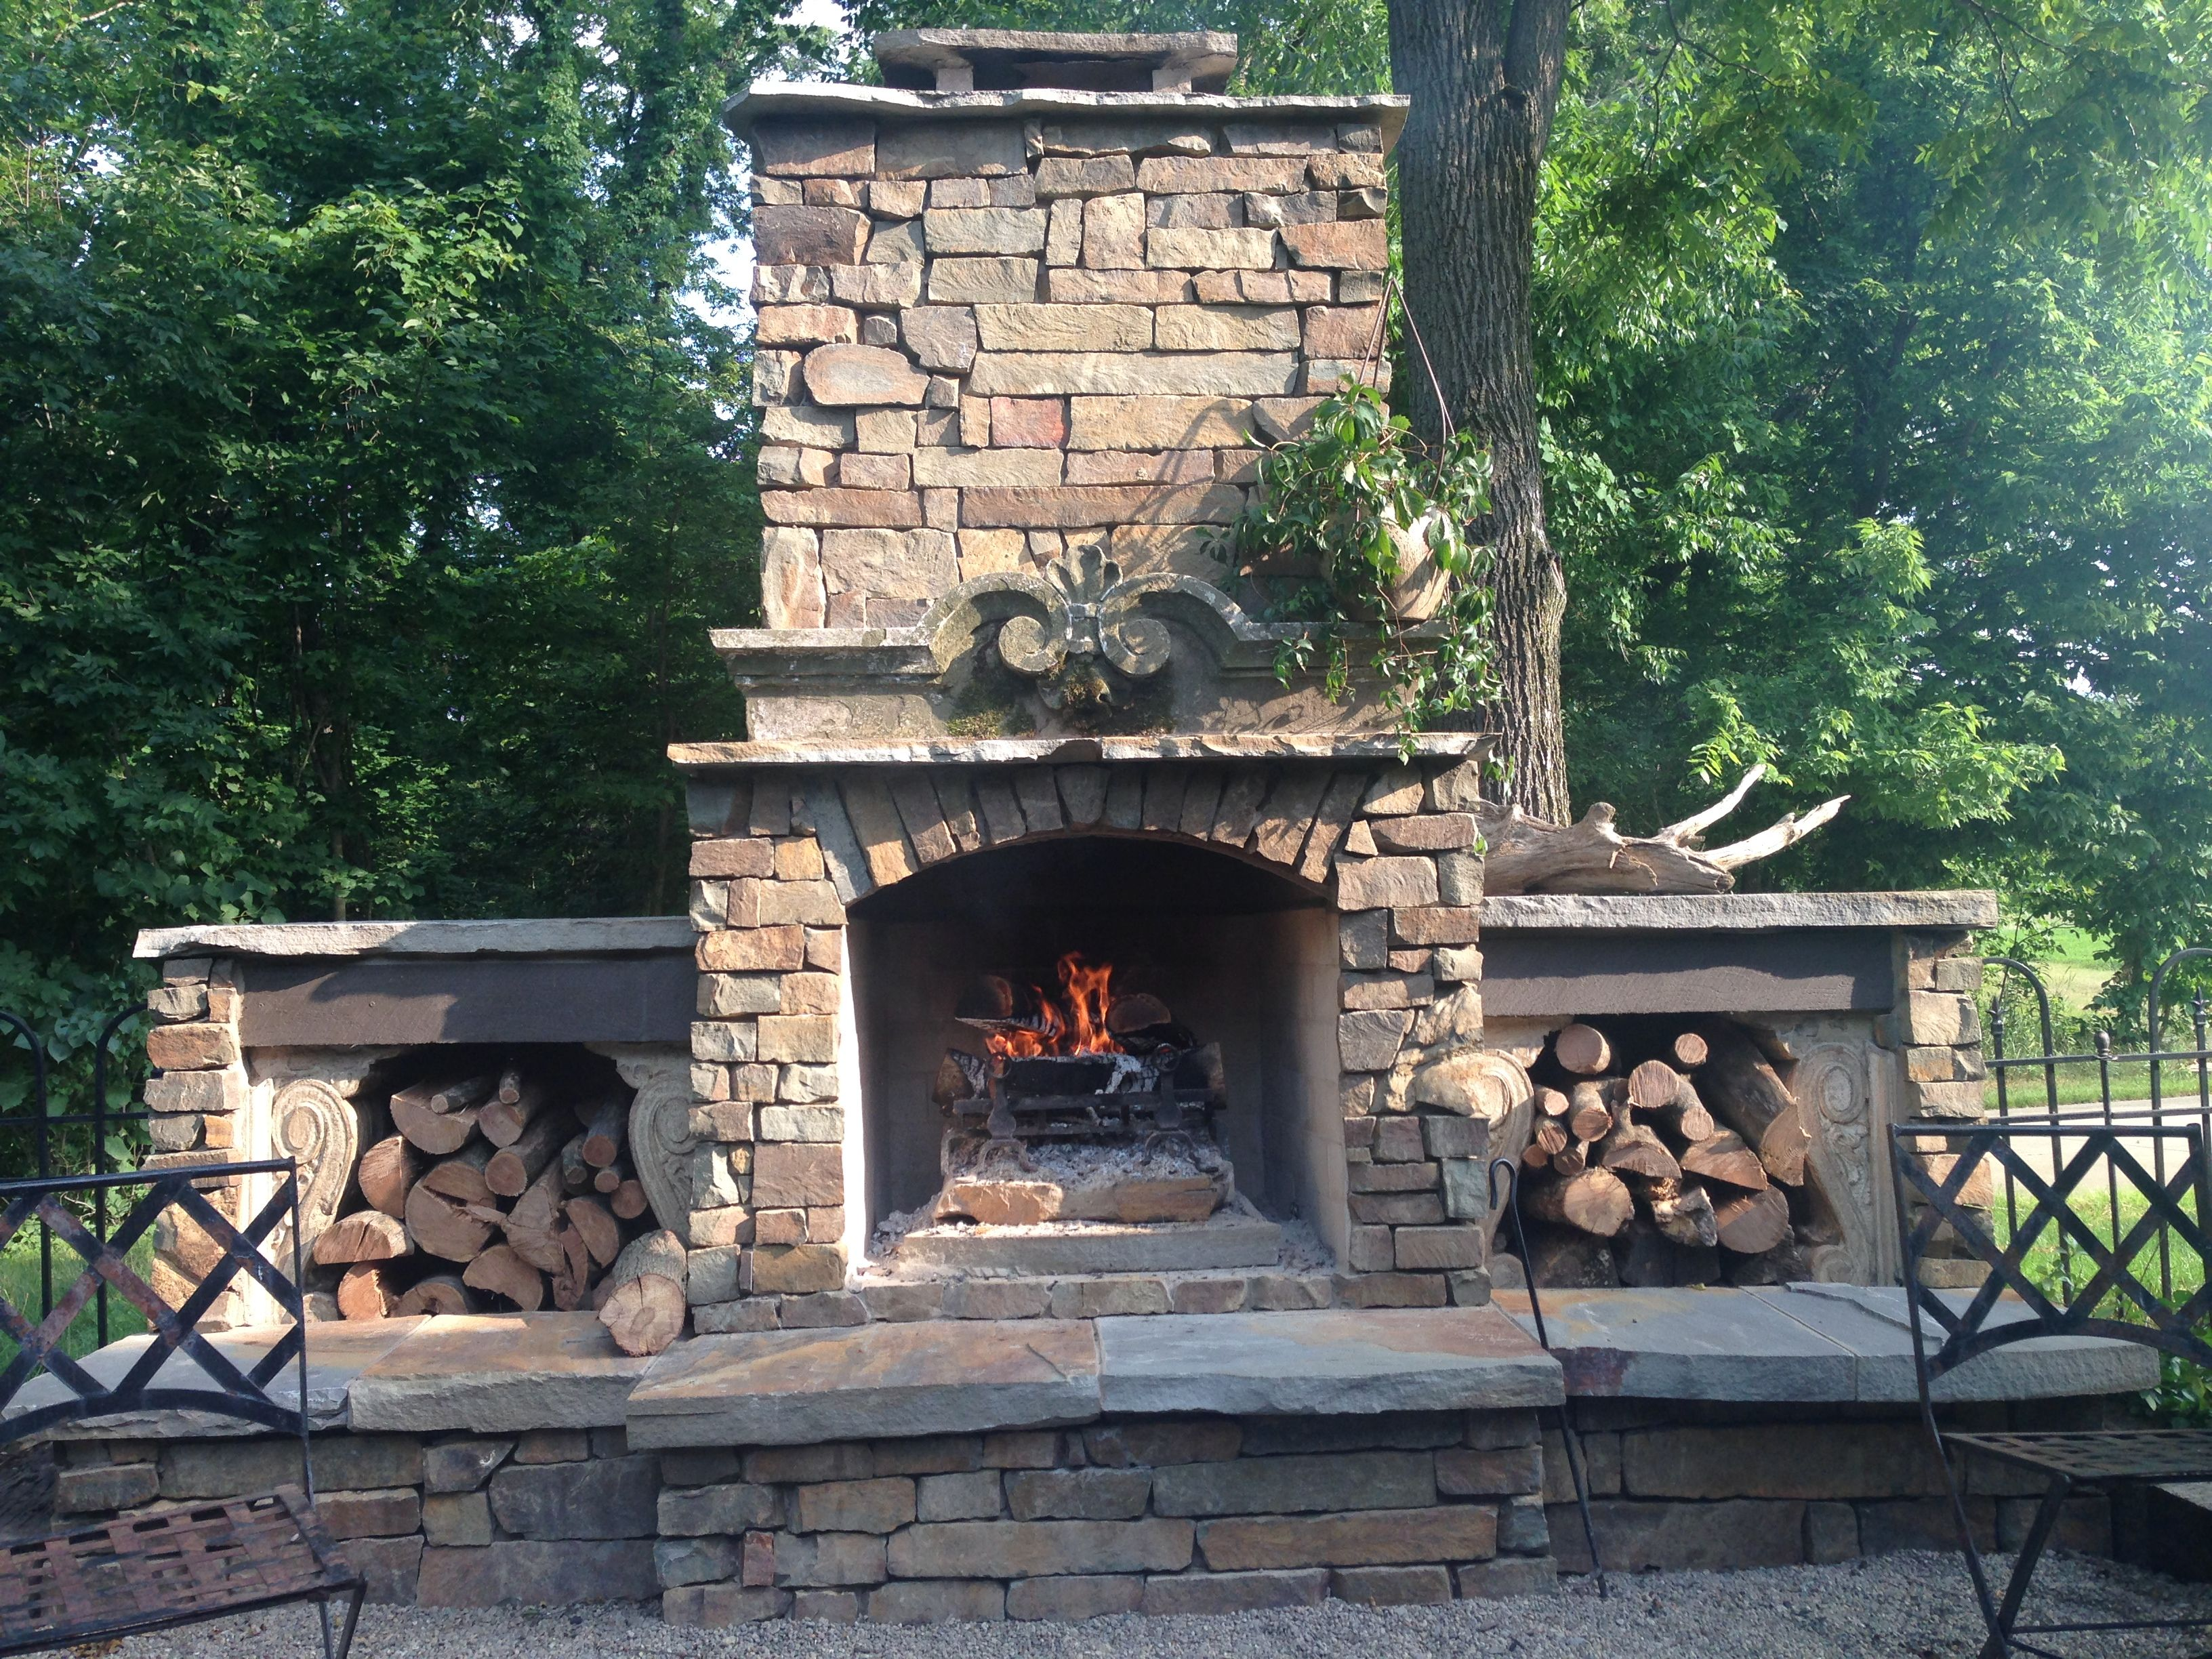 Outdoor king arthur fireplace with side storage boxes for Outdoor stone fireplace designs